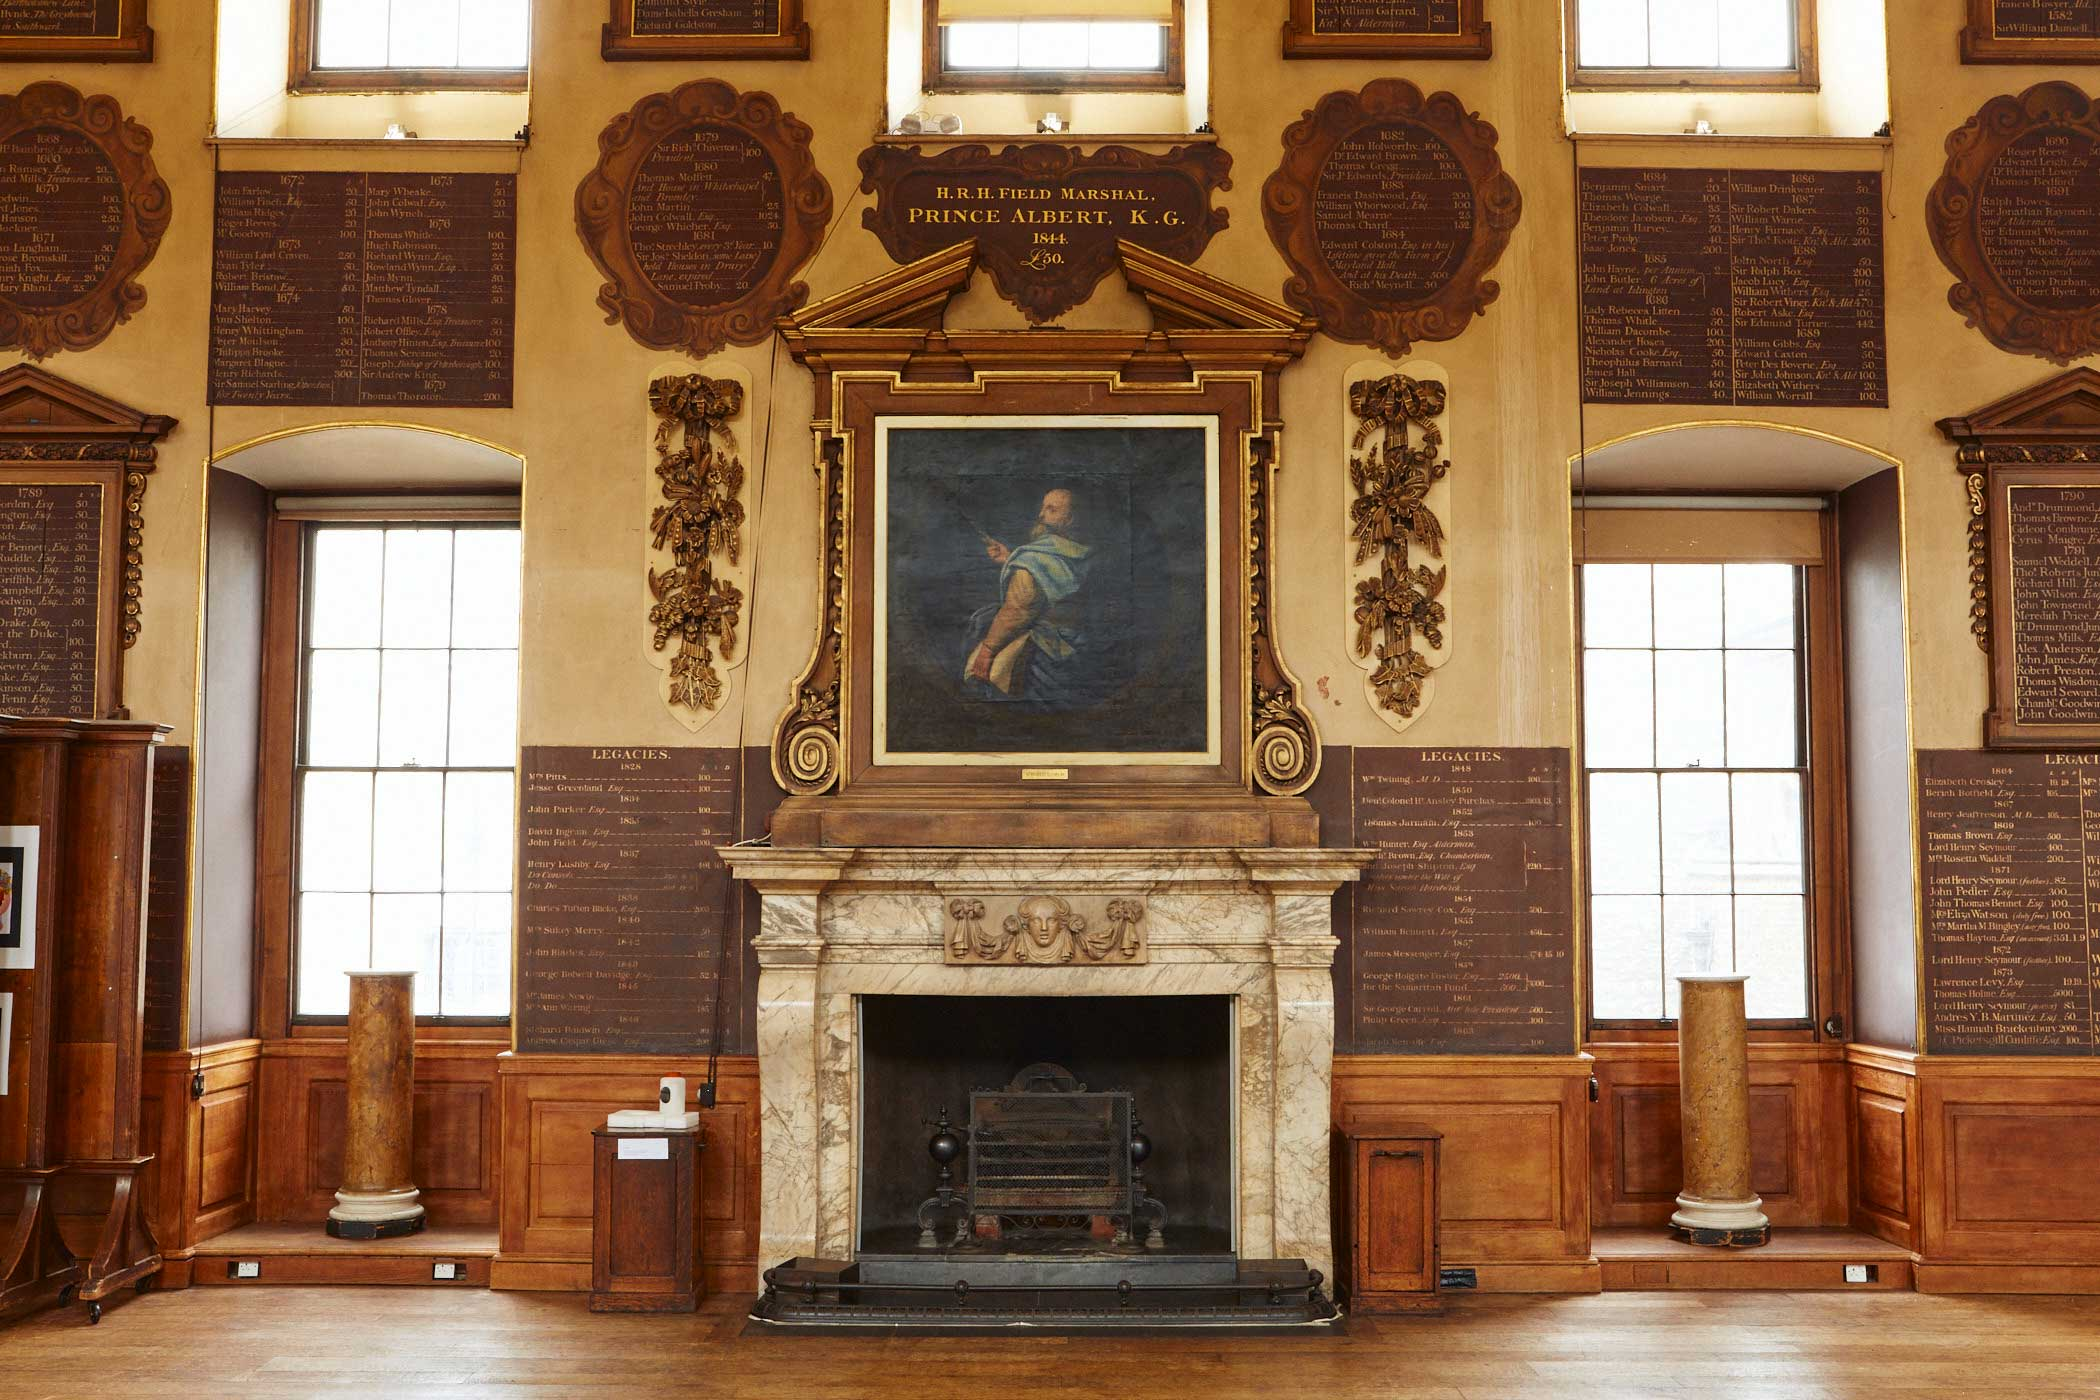 Portrait of St Bartholomew over the fireplace in the Great Hall